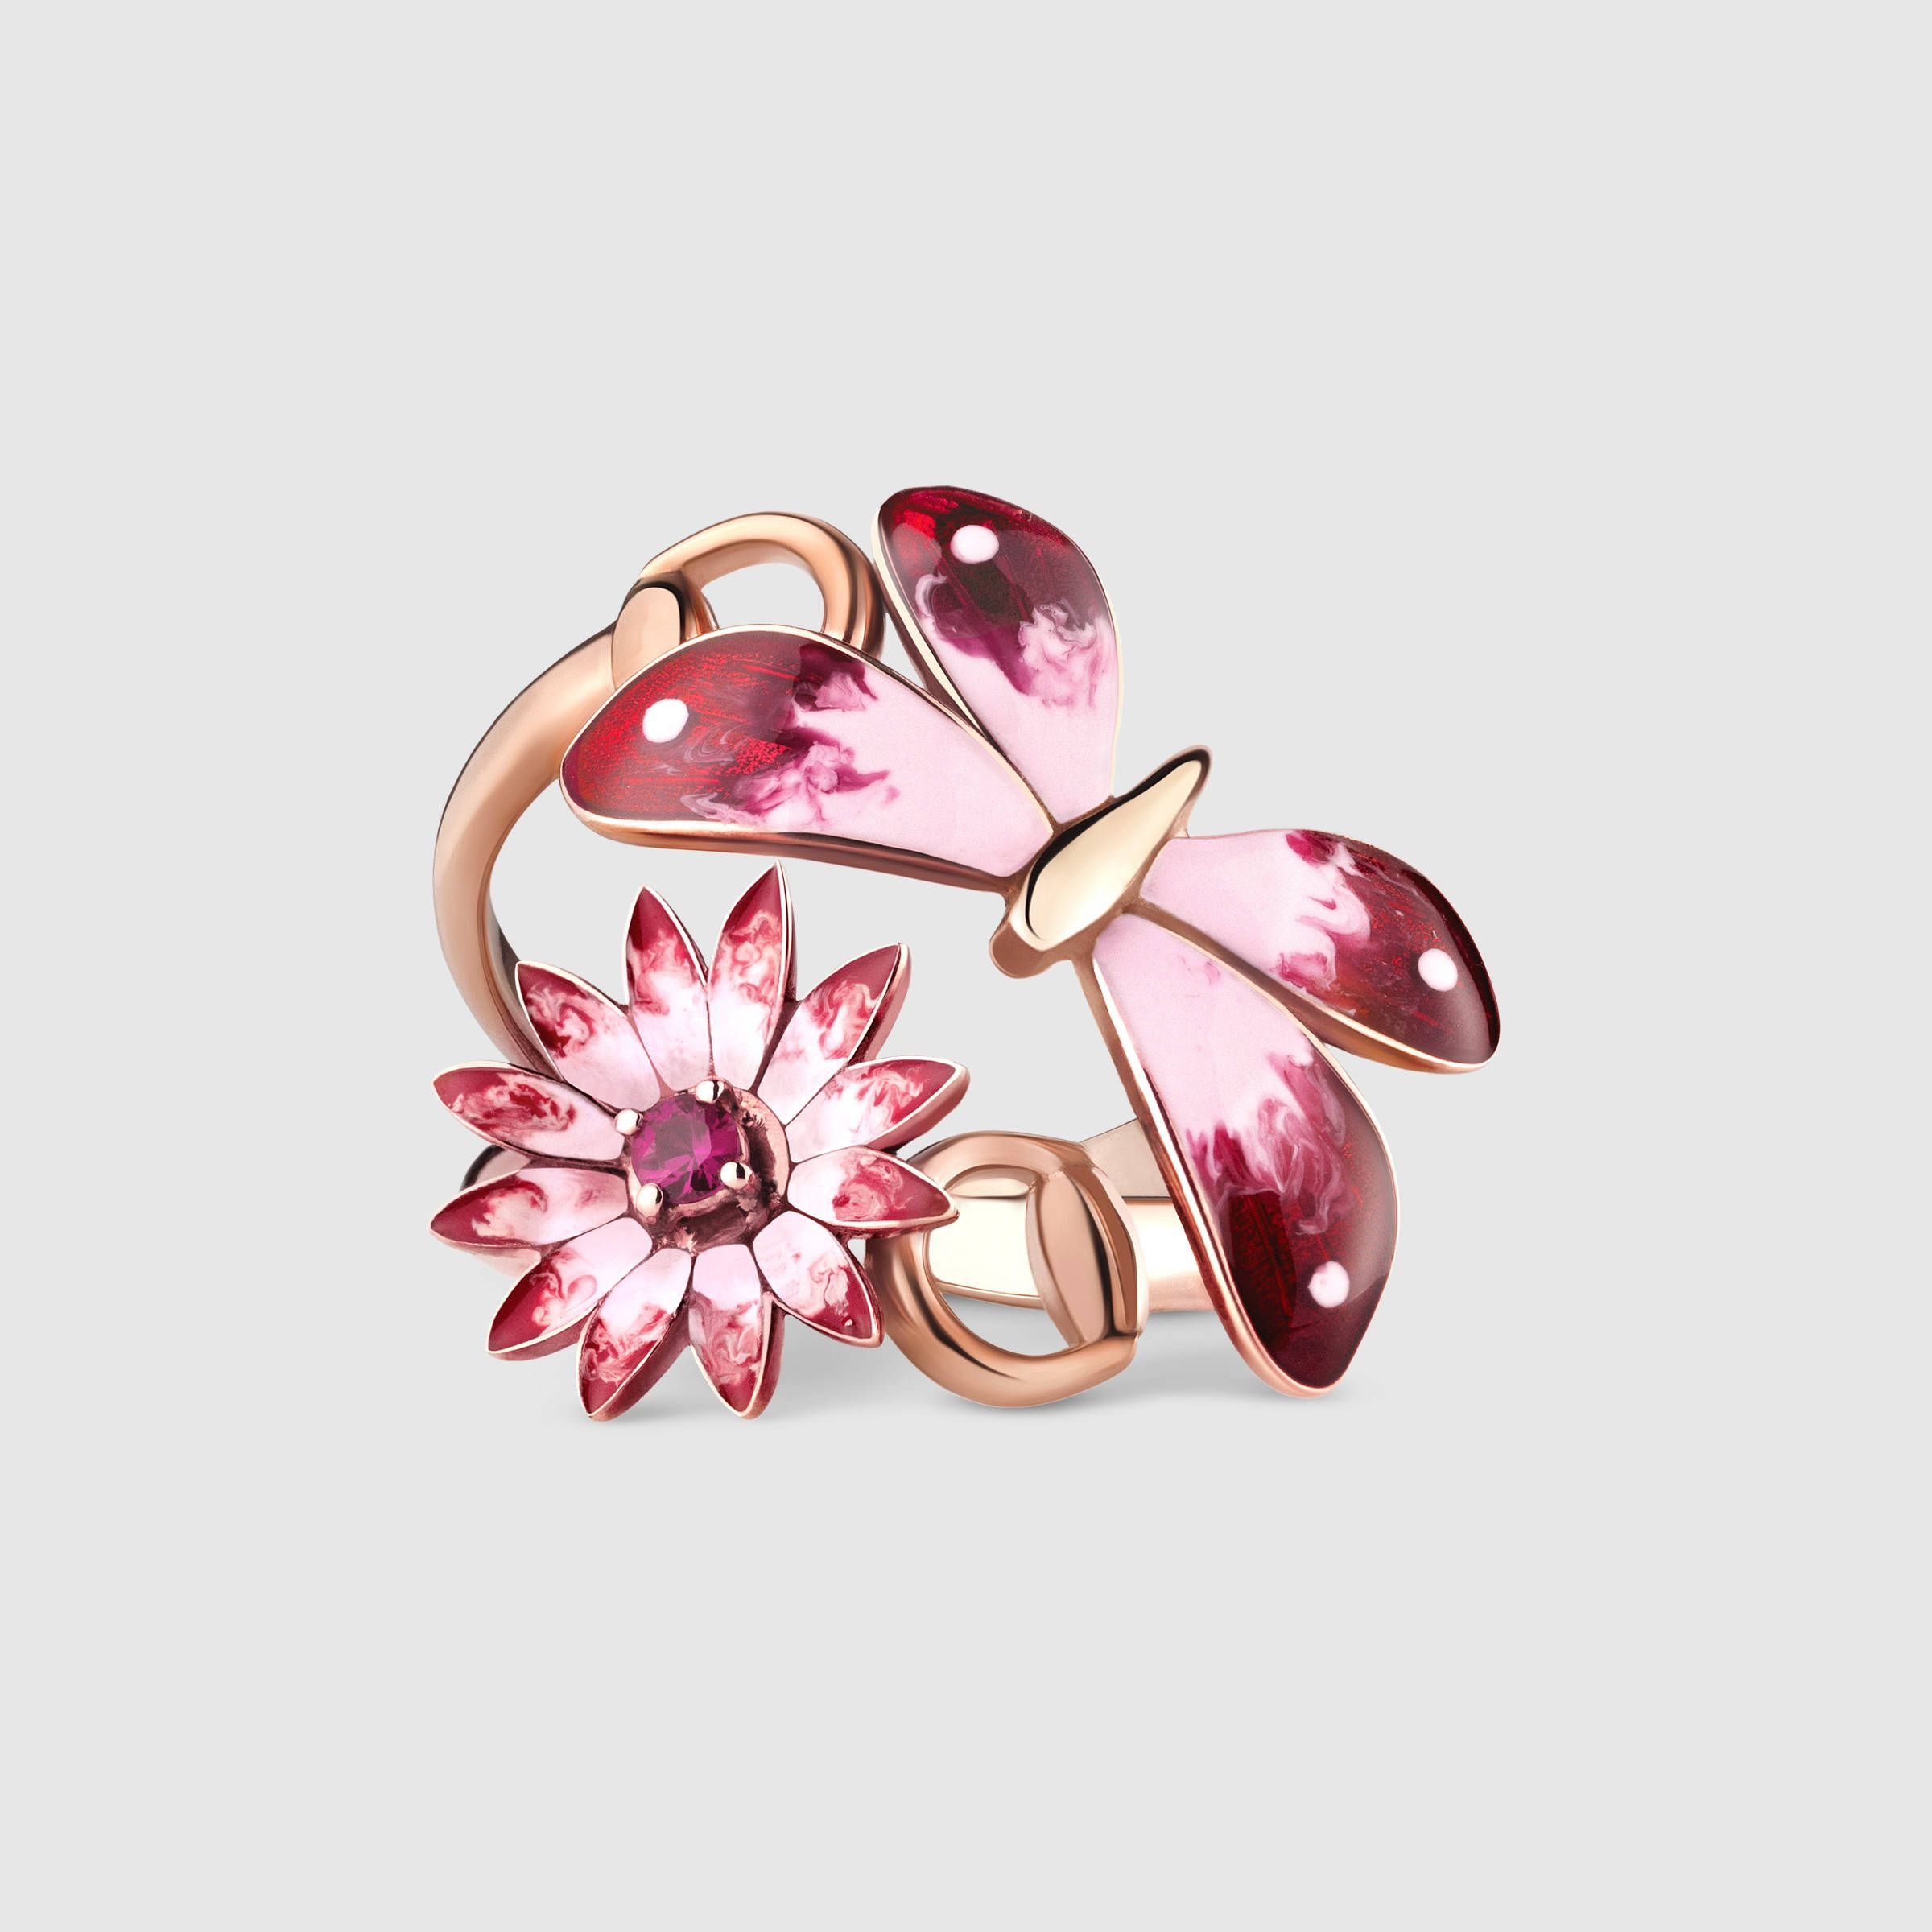 Gucci Flora ring in rose gold, enamel and rubies | Raging Rings ...